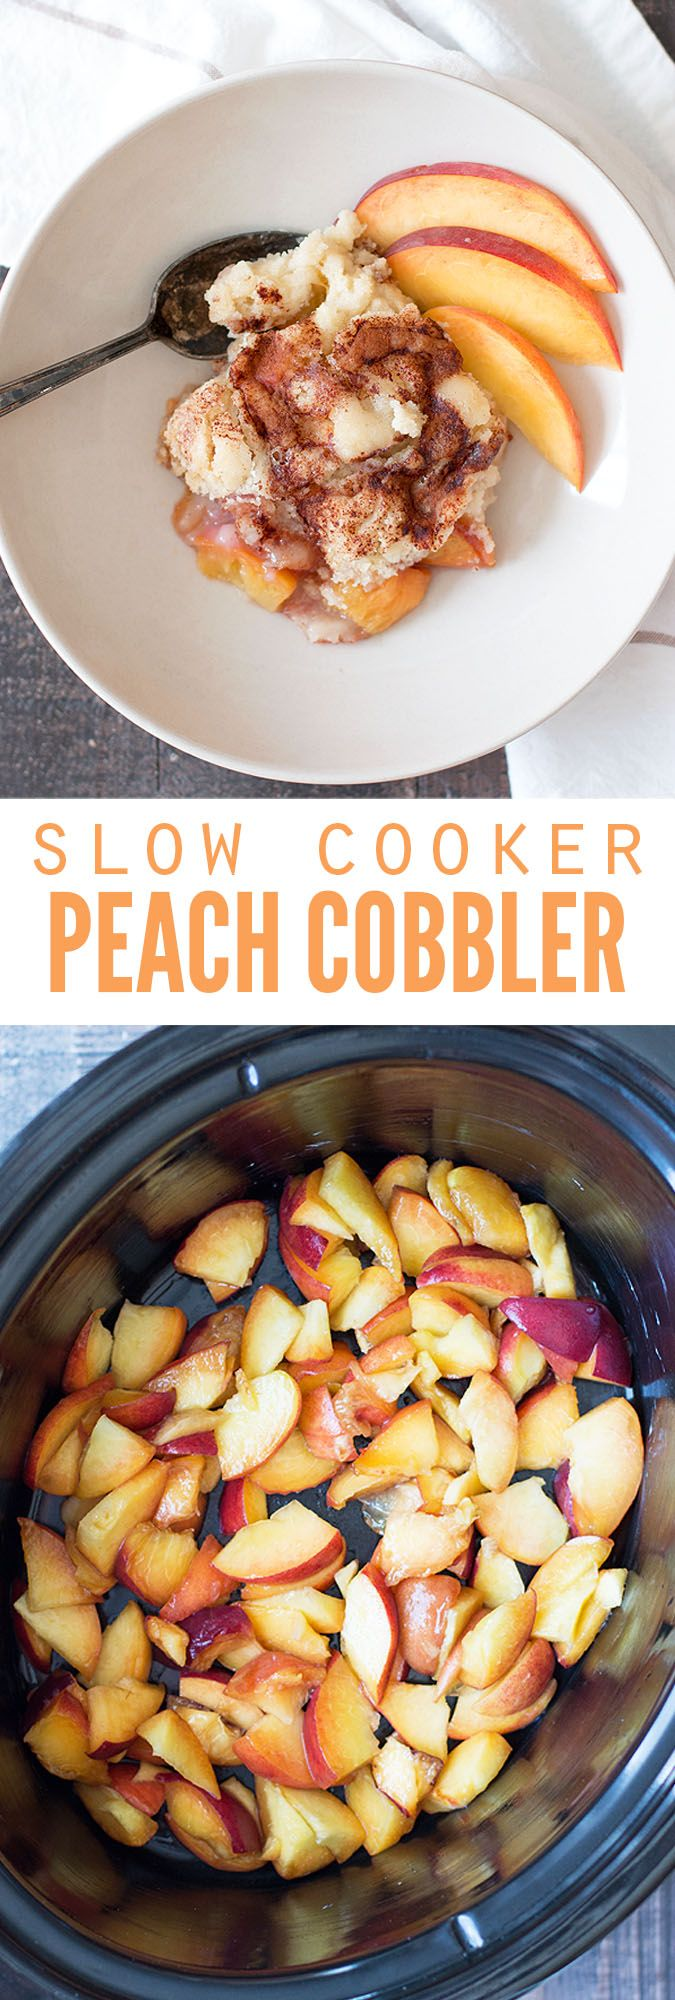 This slow cooker peach cobbler was created after the peach cobbler dump cake, except this version is so much healthier! Using fresh peaches and homemade yellow cake mix, I'm proud to take this to any pot luck! :: DontWastetheCrumbs.com